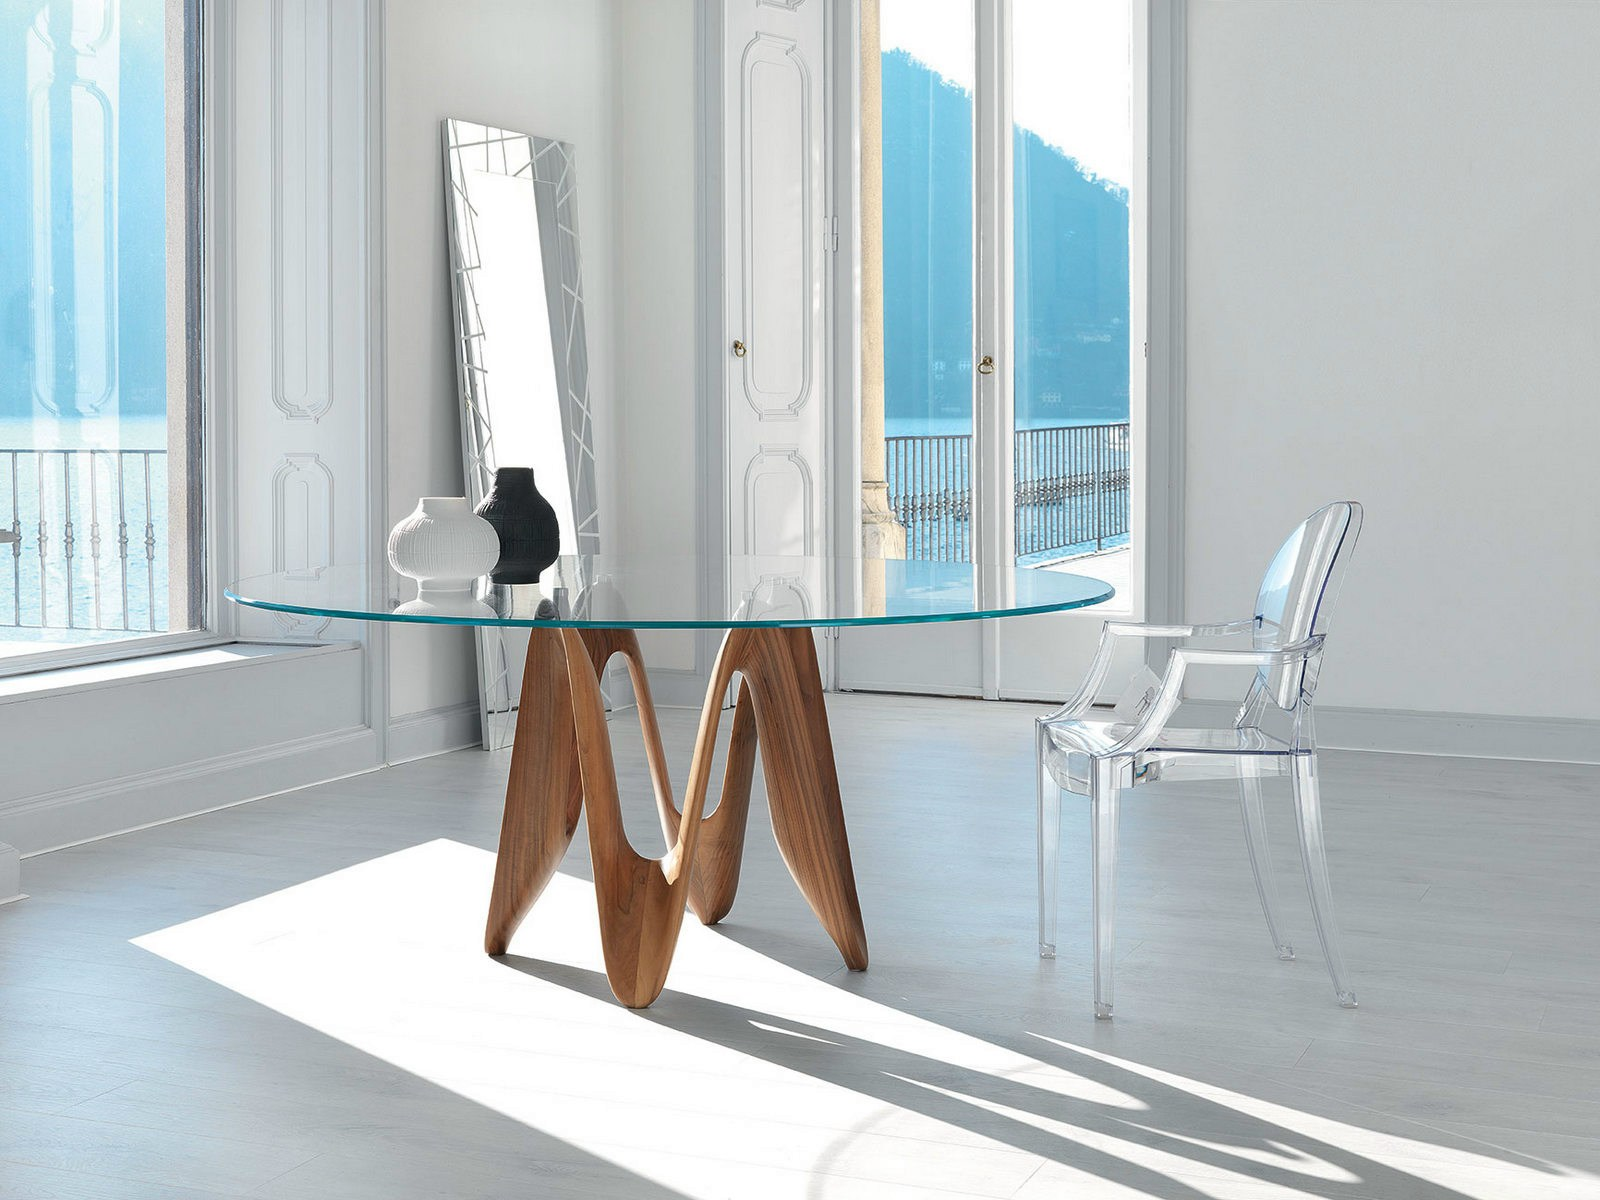 Pin lambda table ronde en verre design et cristalplant on - Table verre ronde ...